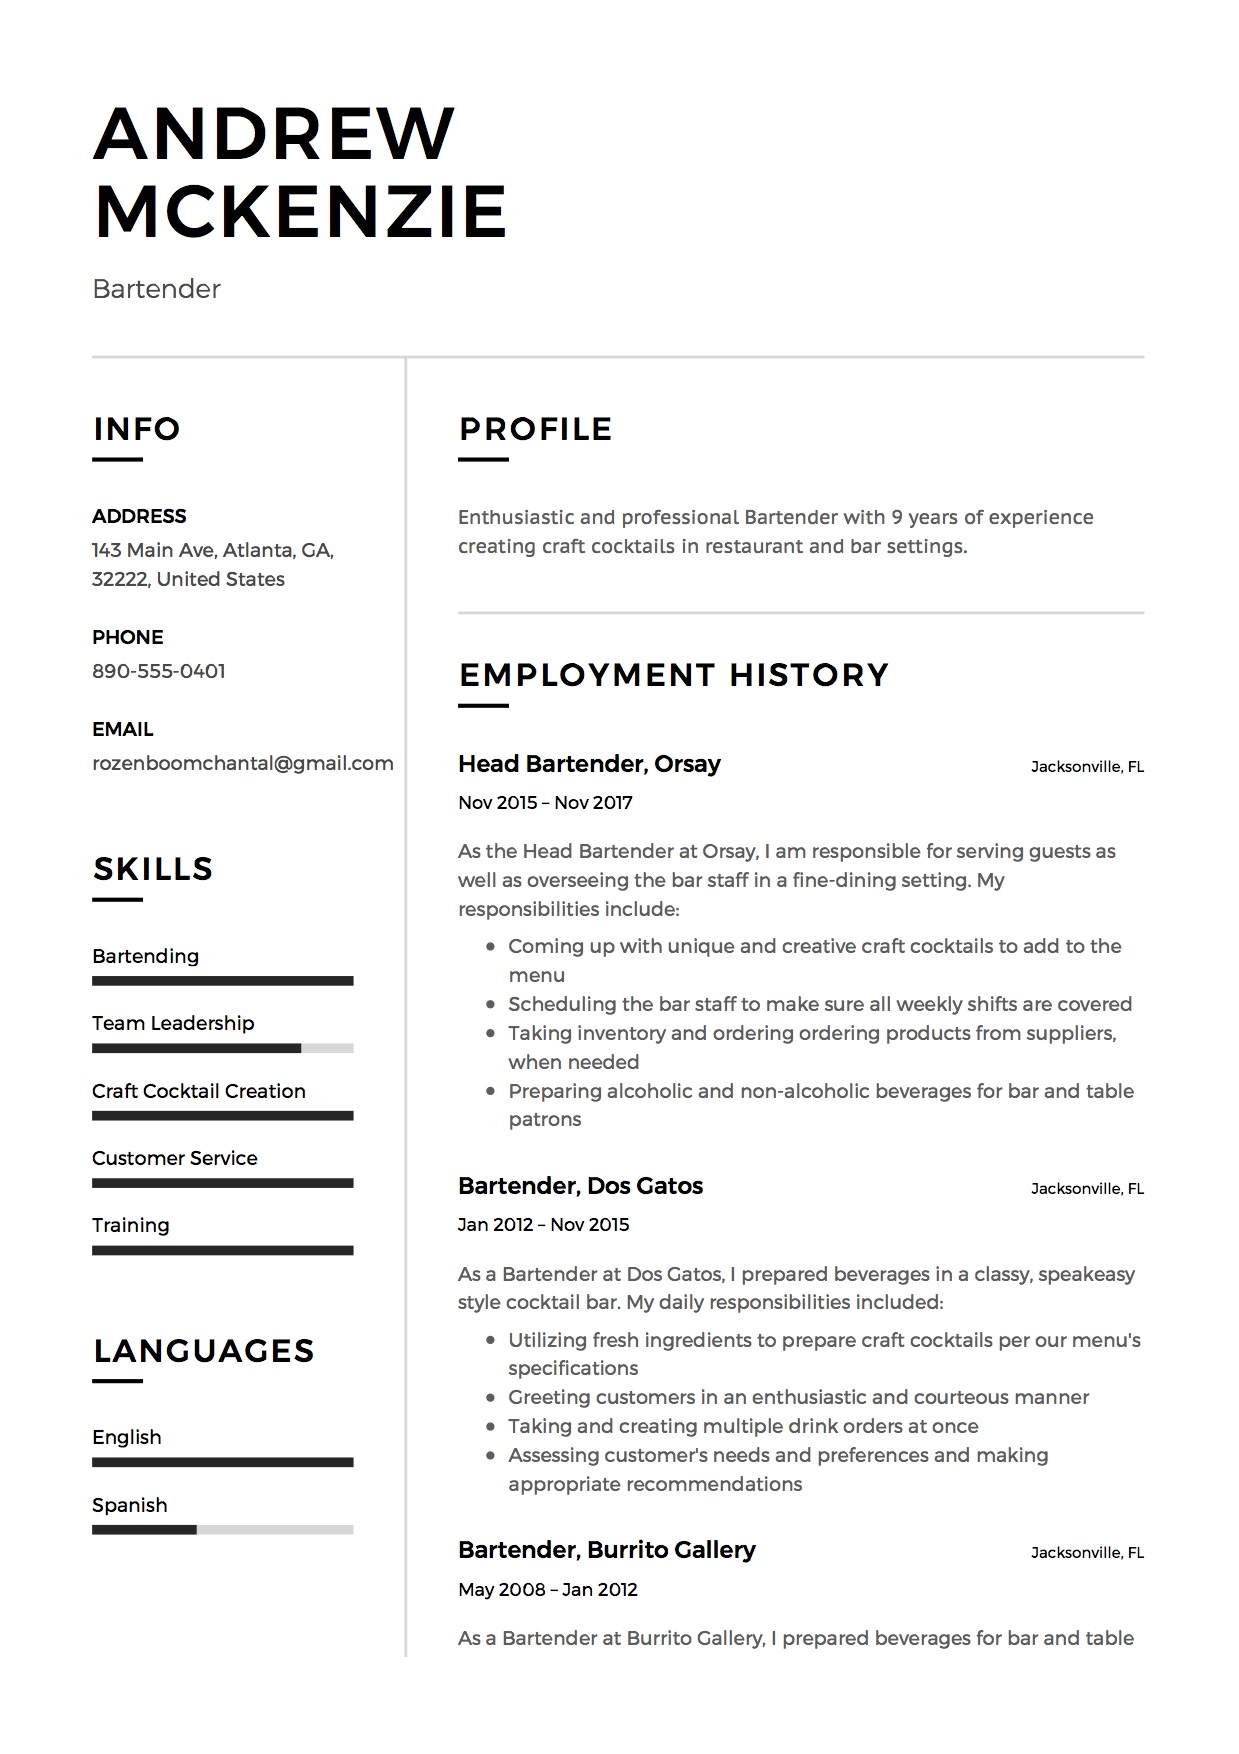 12 bartender resume samples 2018 free downloads - Resume Samples Free Download